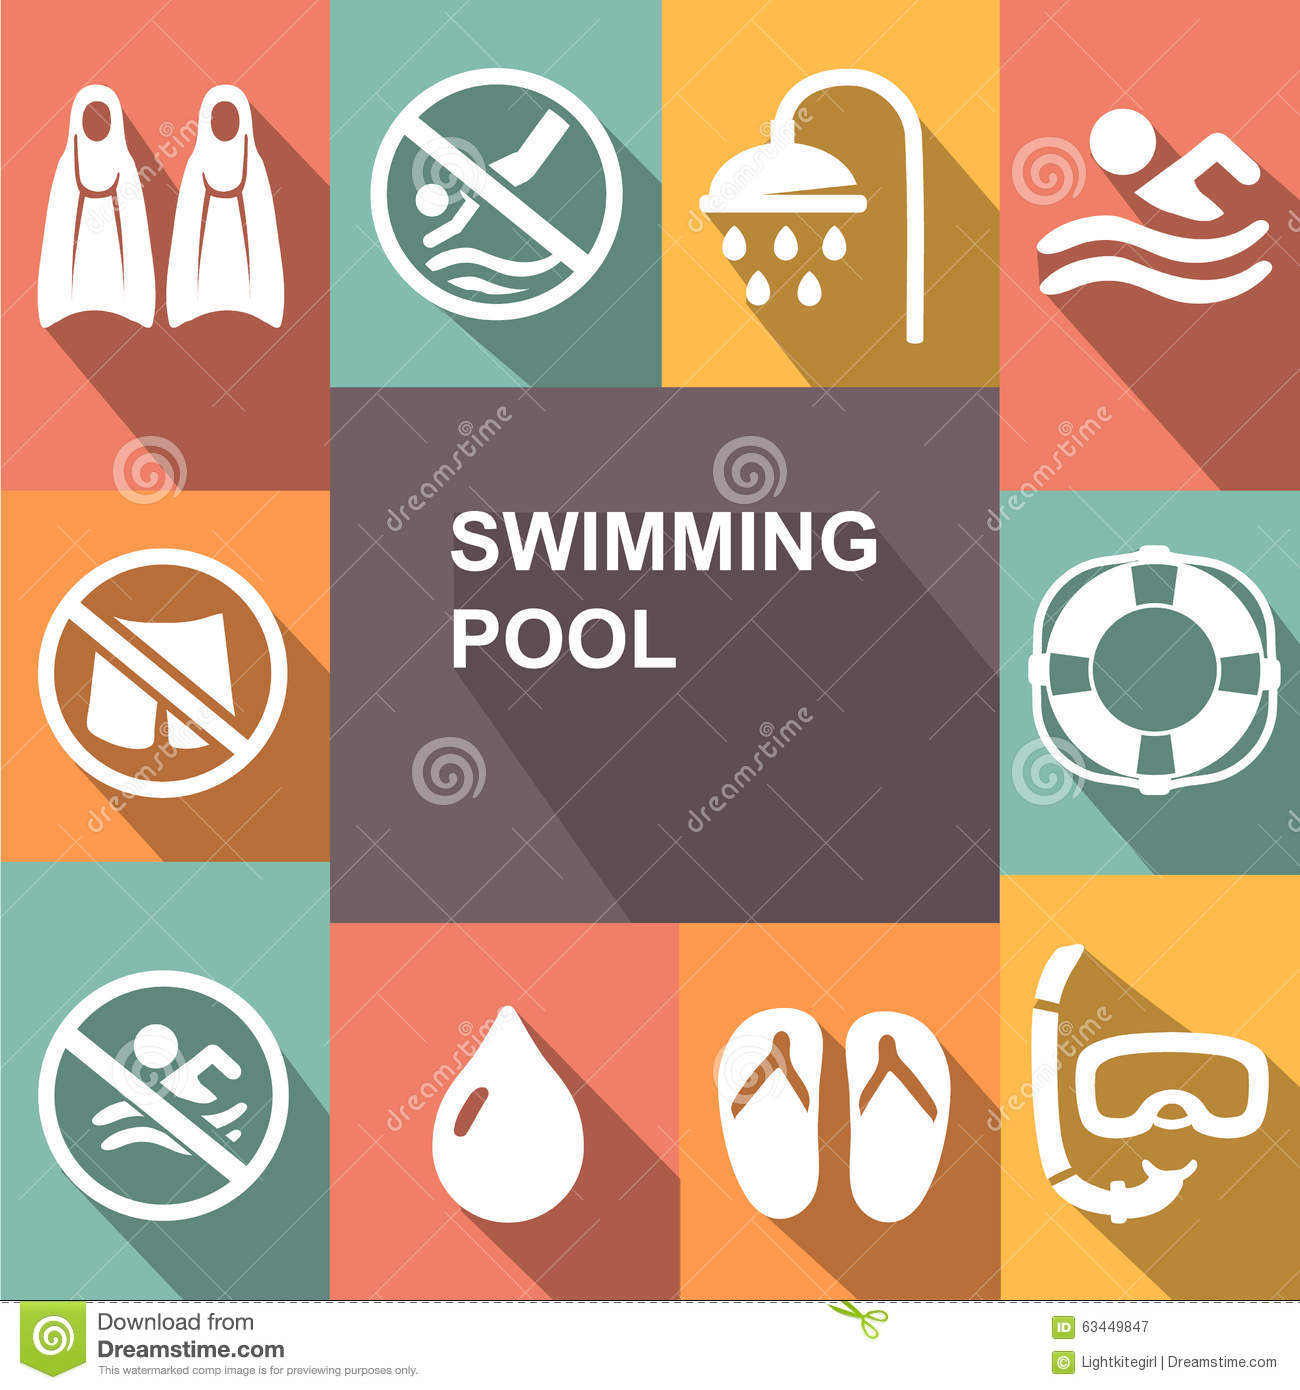 Swimming Pool Cleaning Symbols : Hydrotherapy cartoons illustrations vector stock images